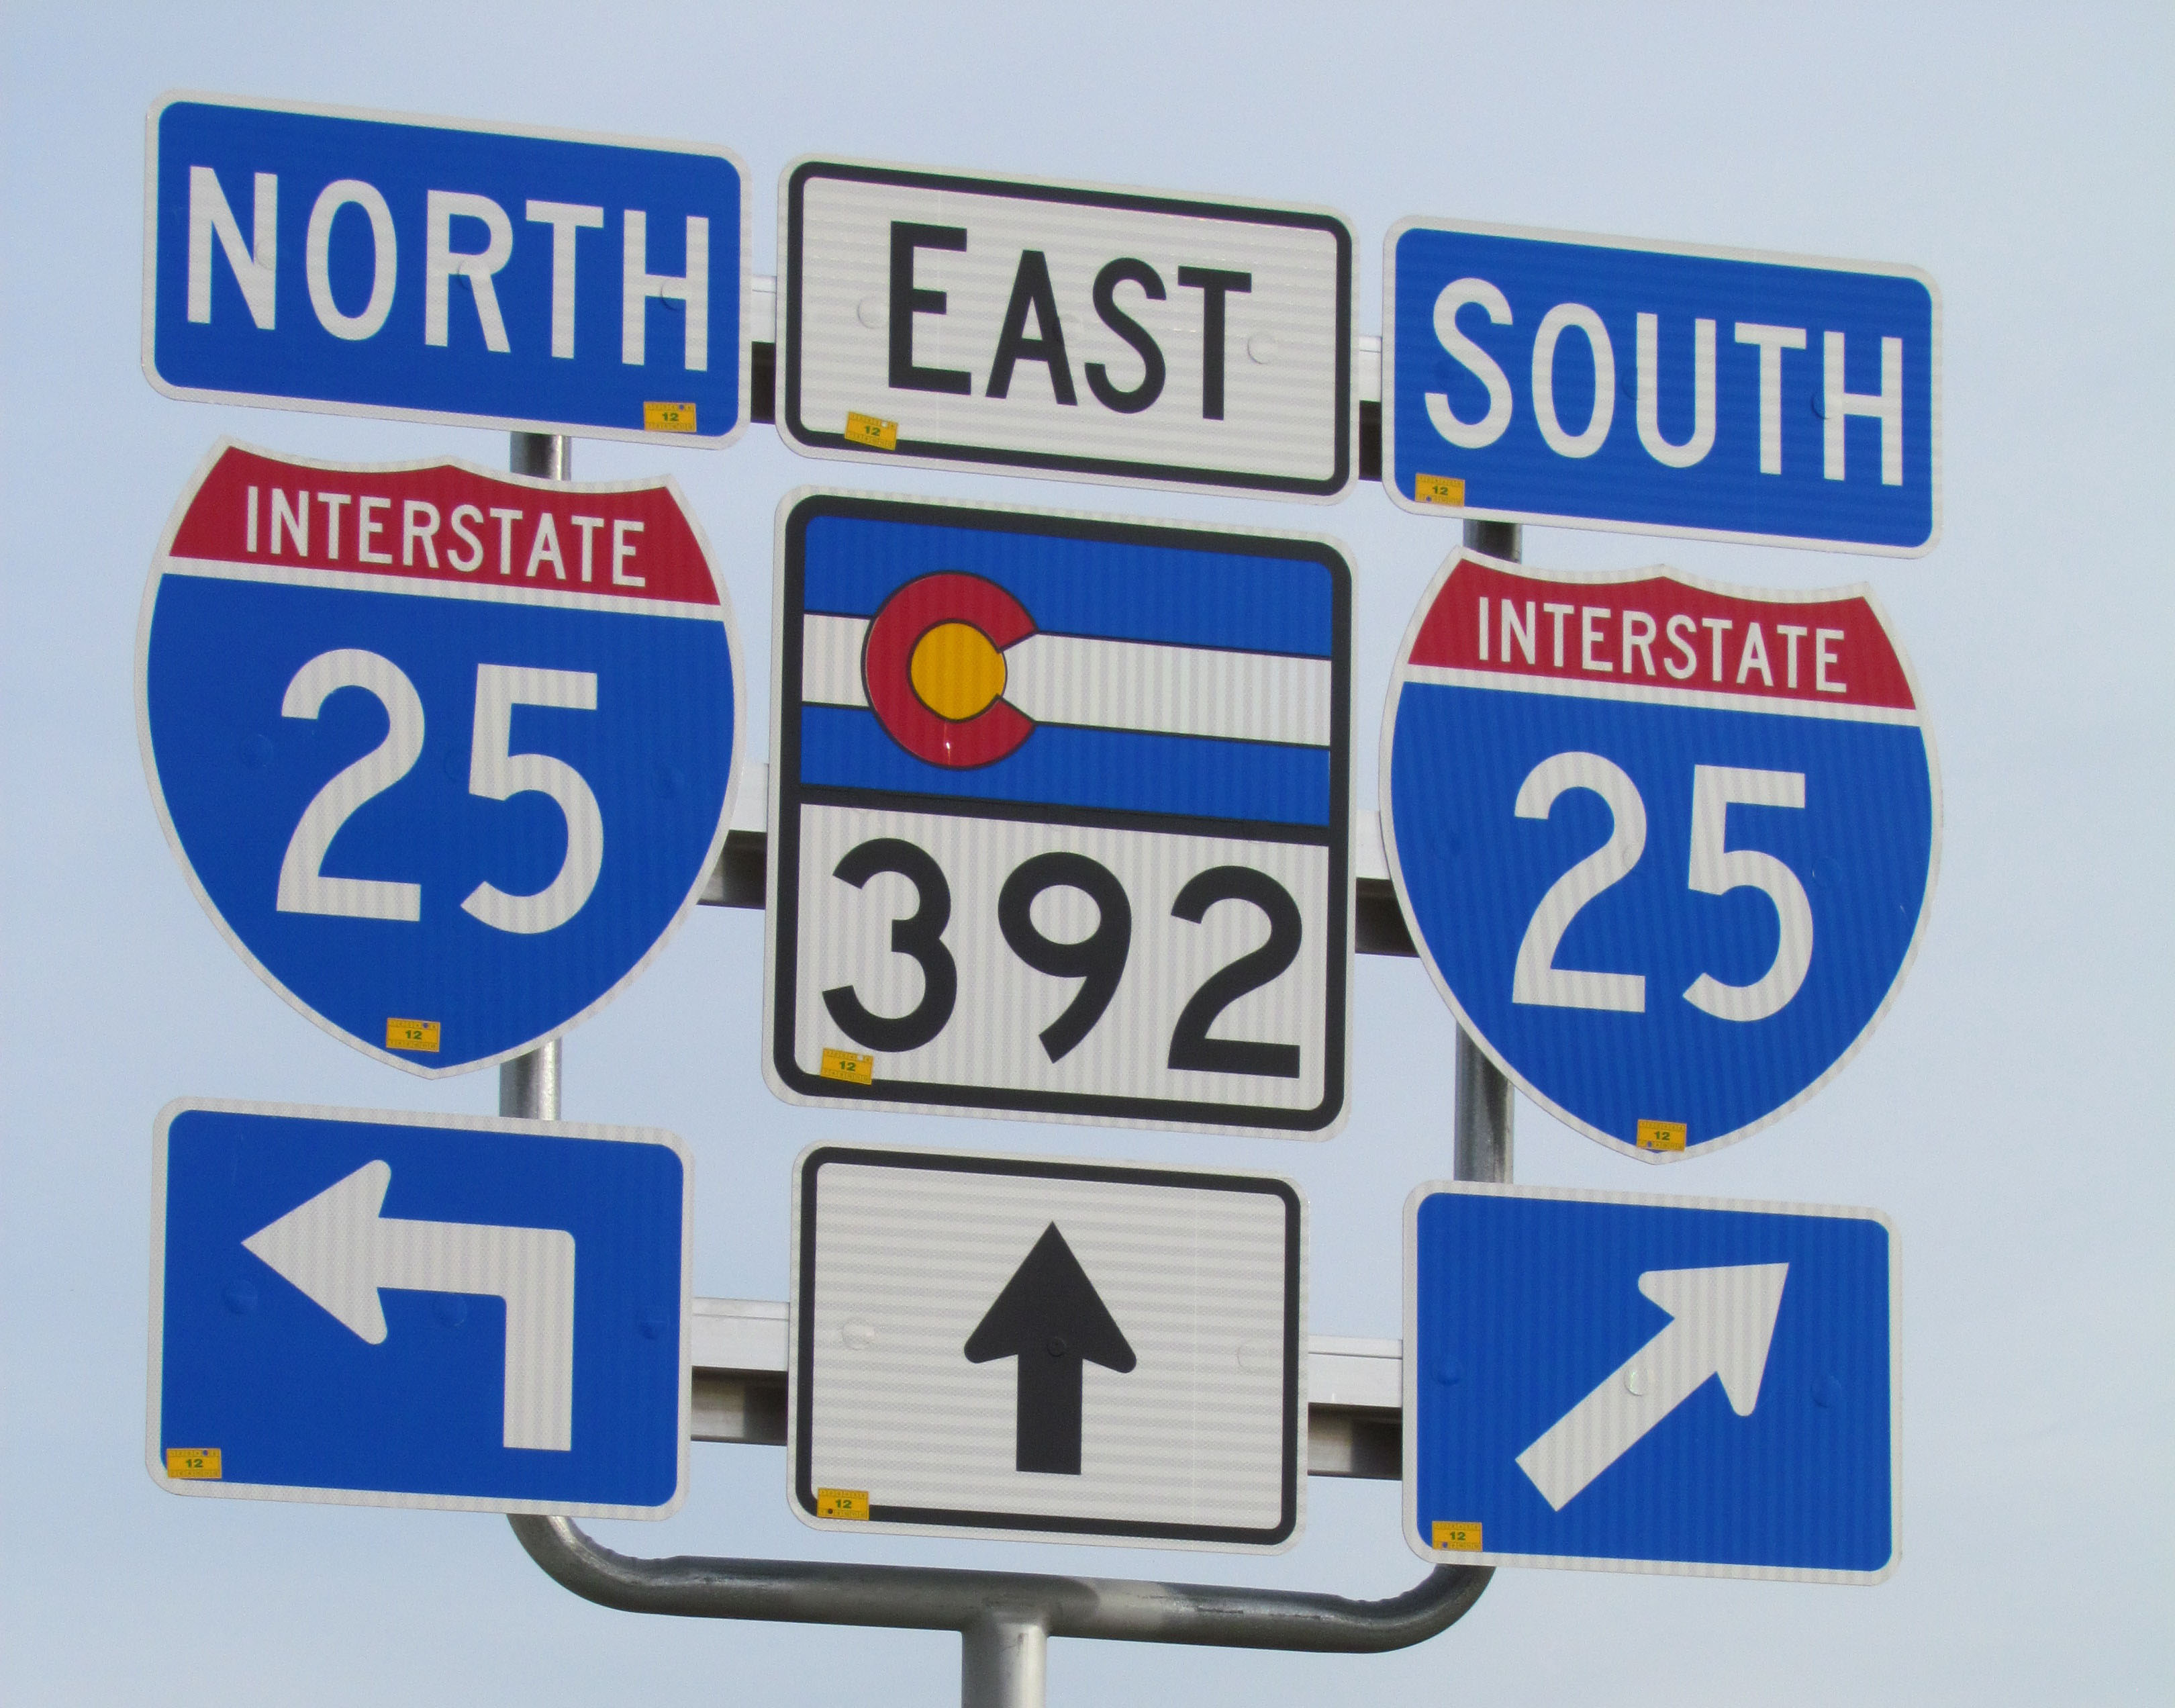 I-25 and State Highway 392 Sign detail image